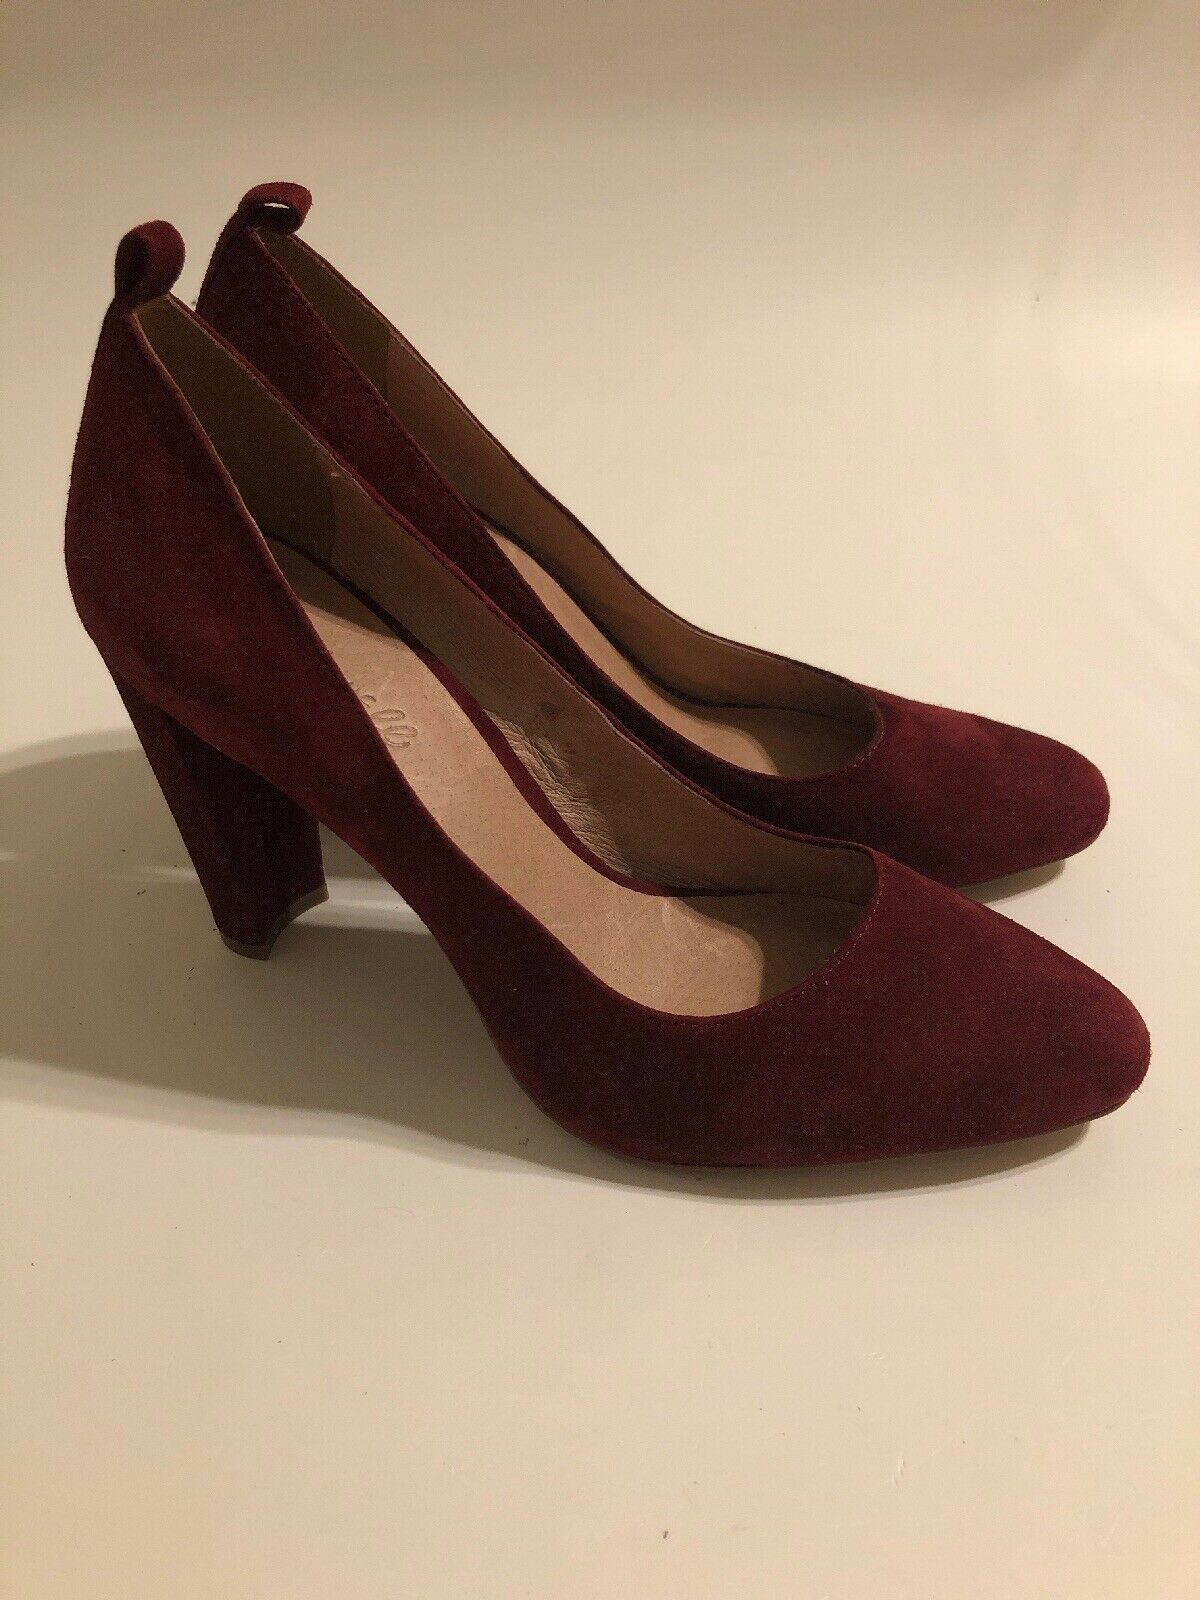 MADEWELL NEW rosso Suede Block Heel Classic  Pump scarpe donna Dimensione 8.5 M  sconto